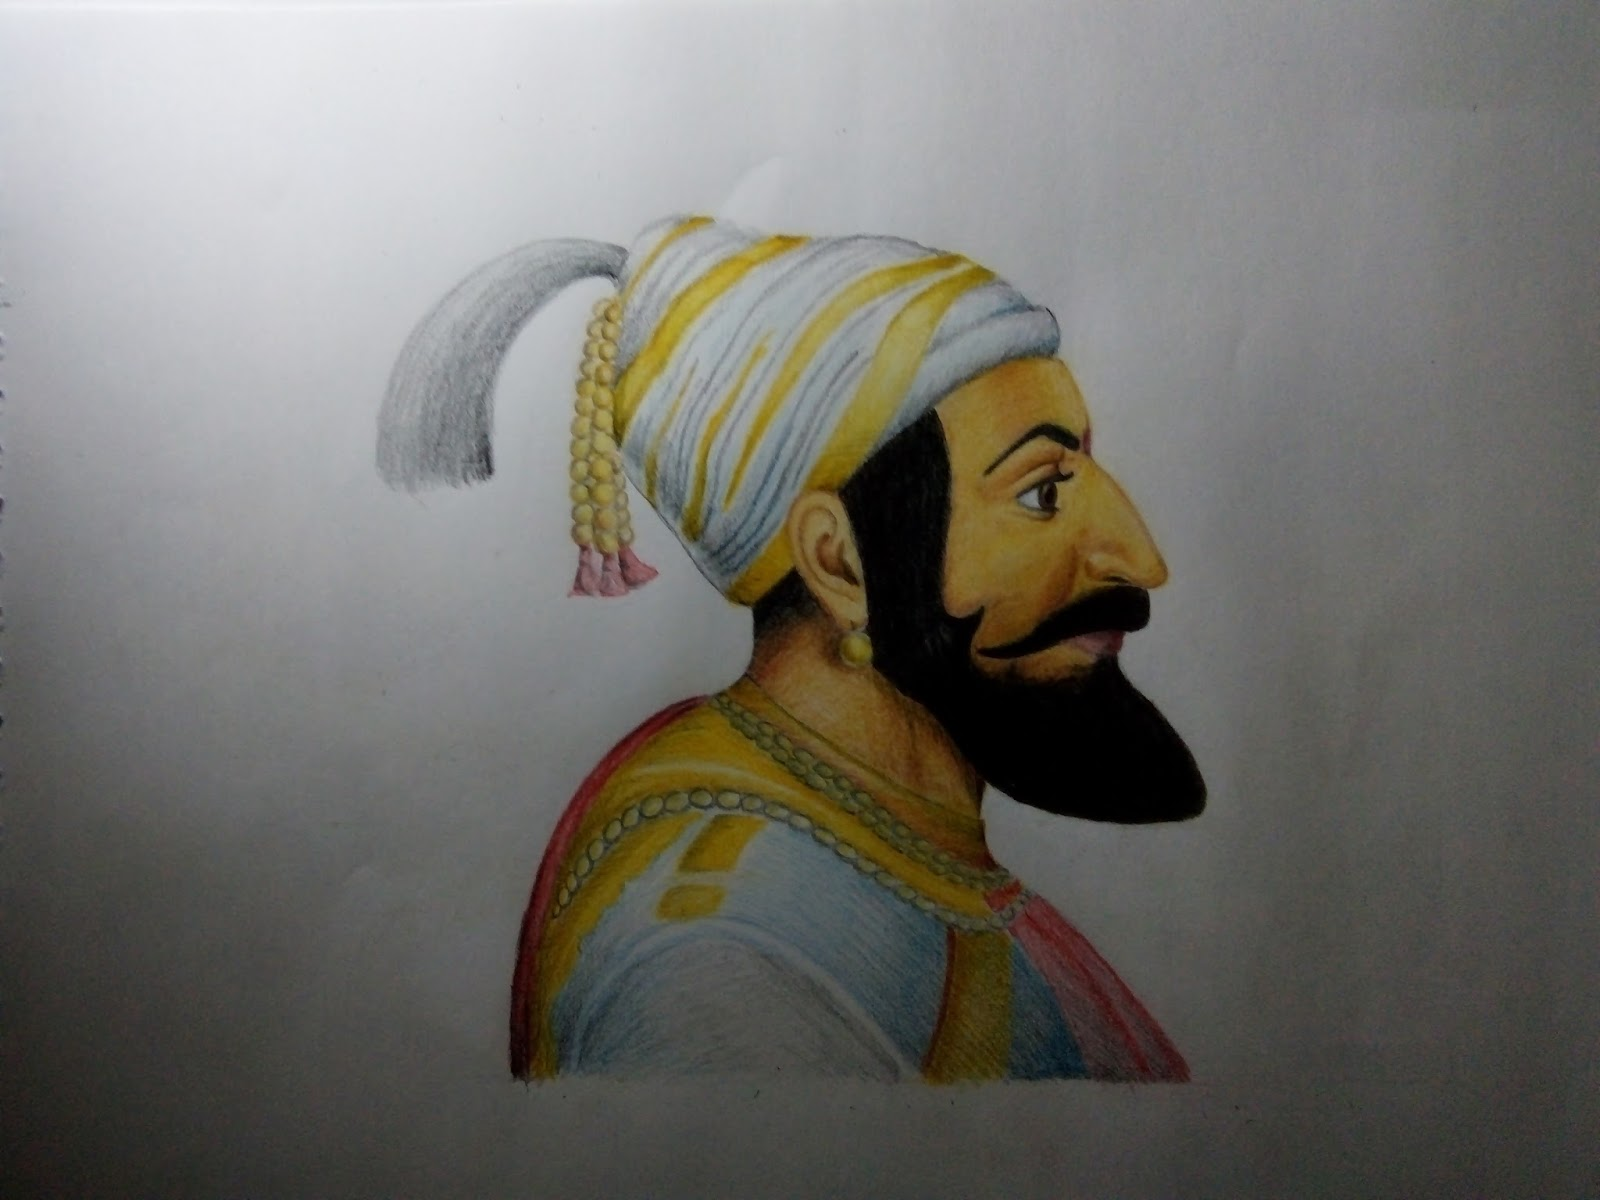 Portrait of chatrapati shivaji maharaj paper size a3 color pencils sketch 5 hours of work